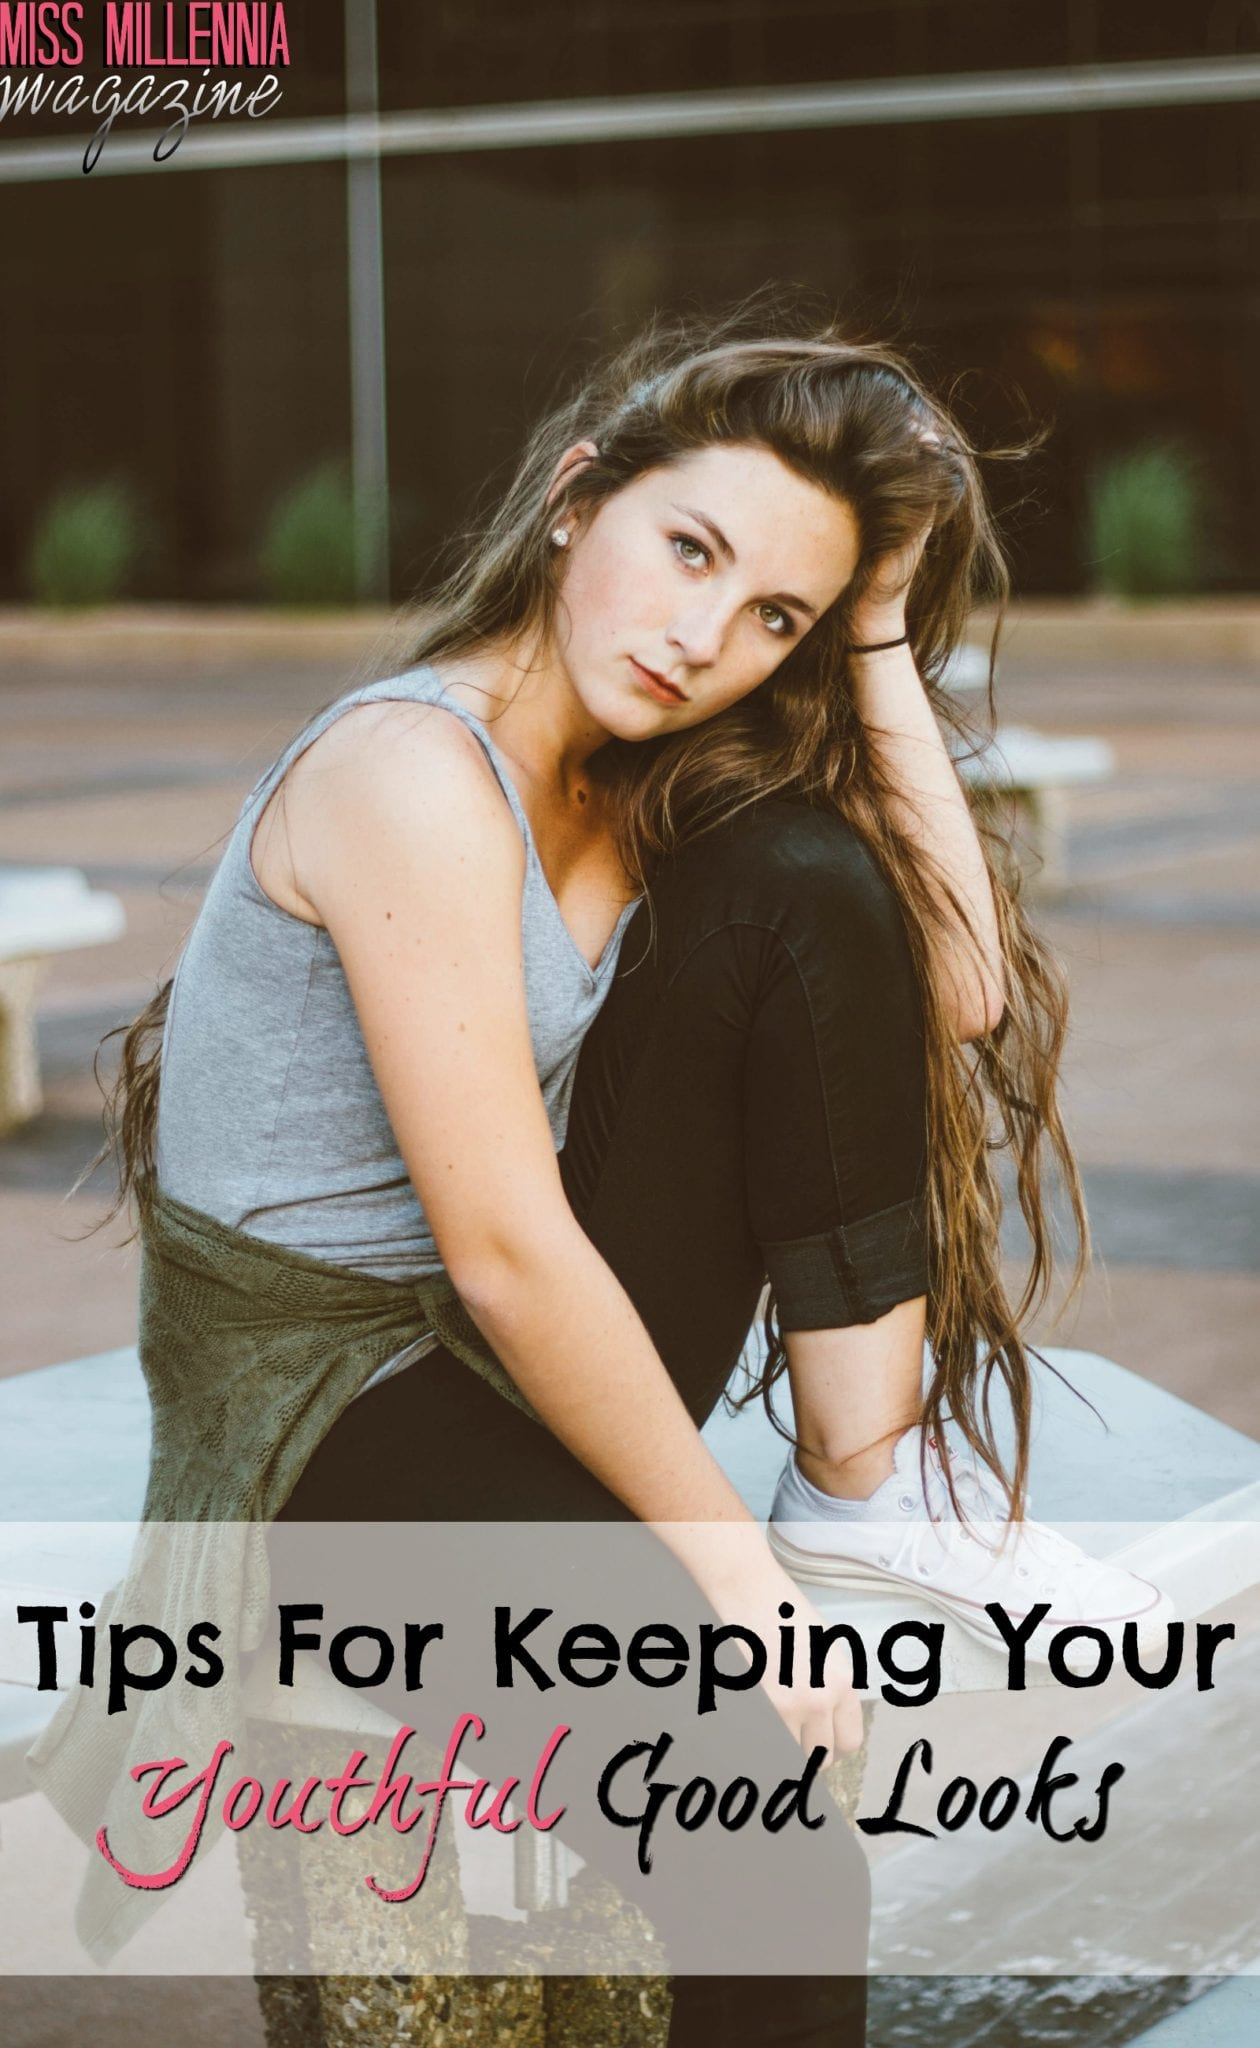 Tips For Keeping Your Youthful Good Looks